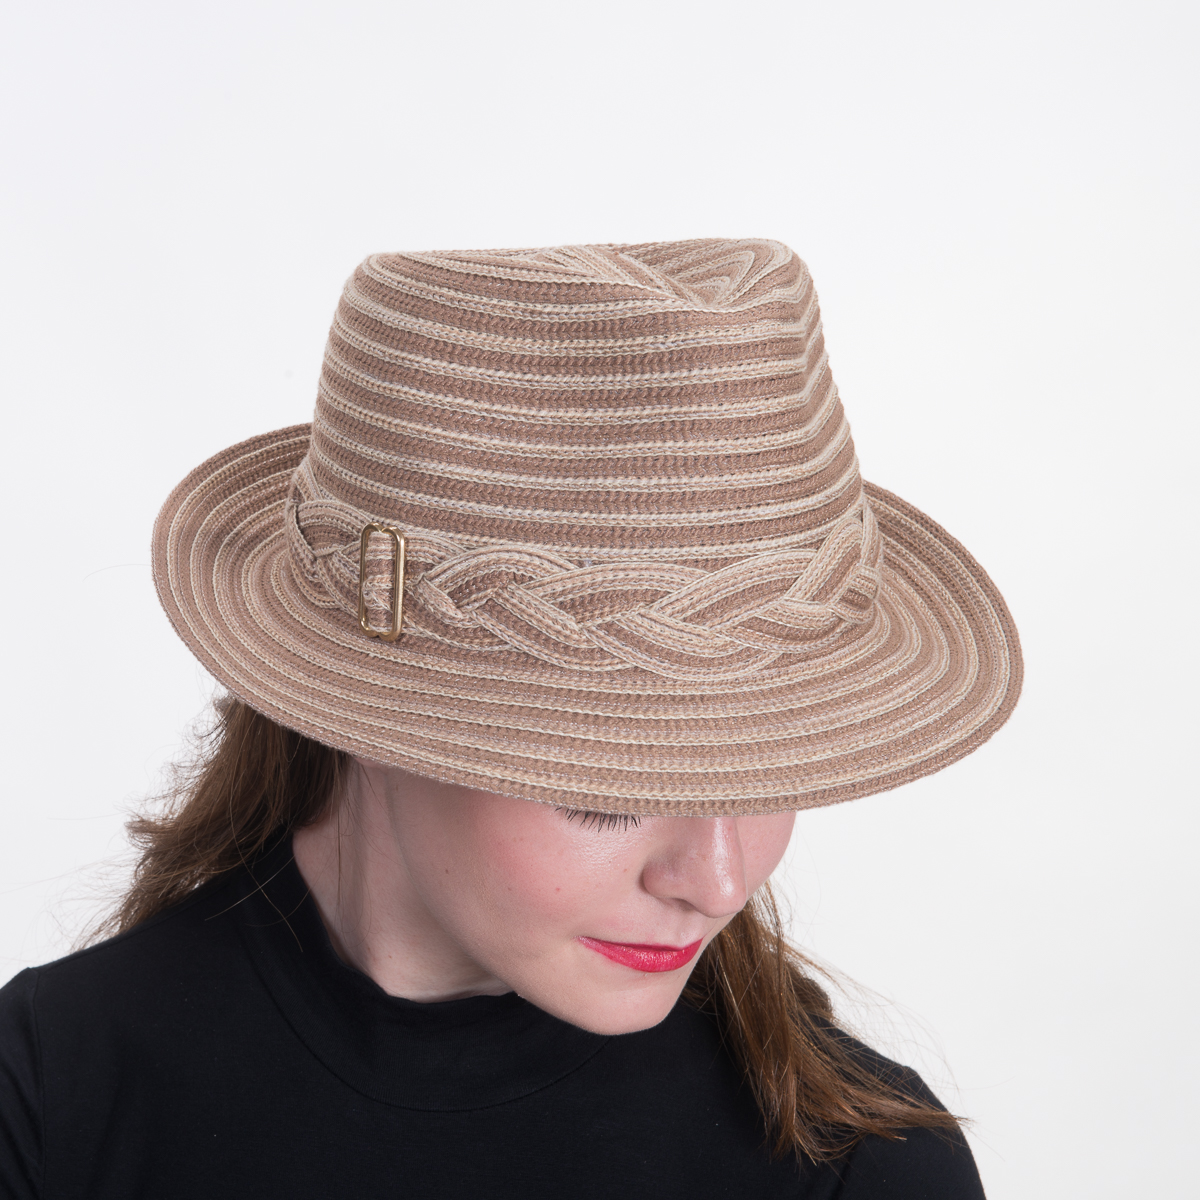 13e37f273 Beige Cotton Mix Fedora-Braided Trim Hats-740082B-BG- Sun Yorkos | KaKyCo  Accessories